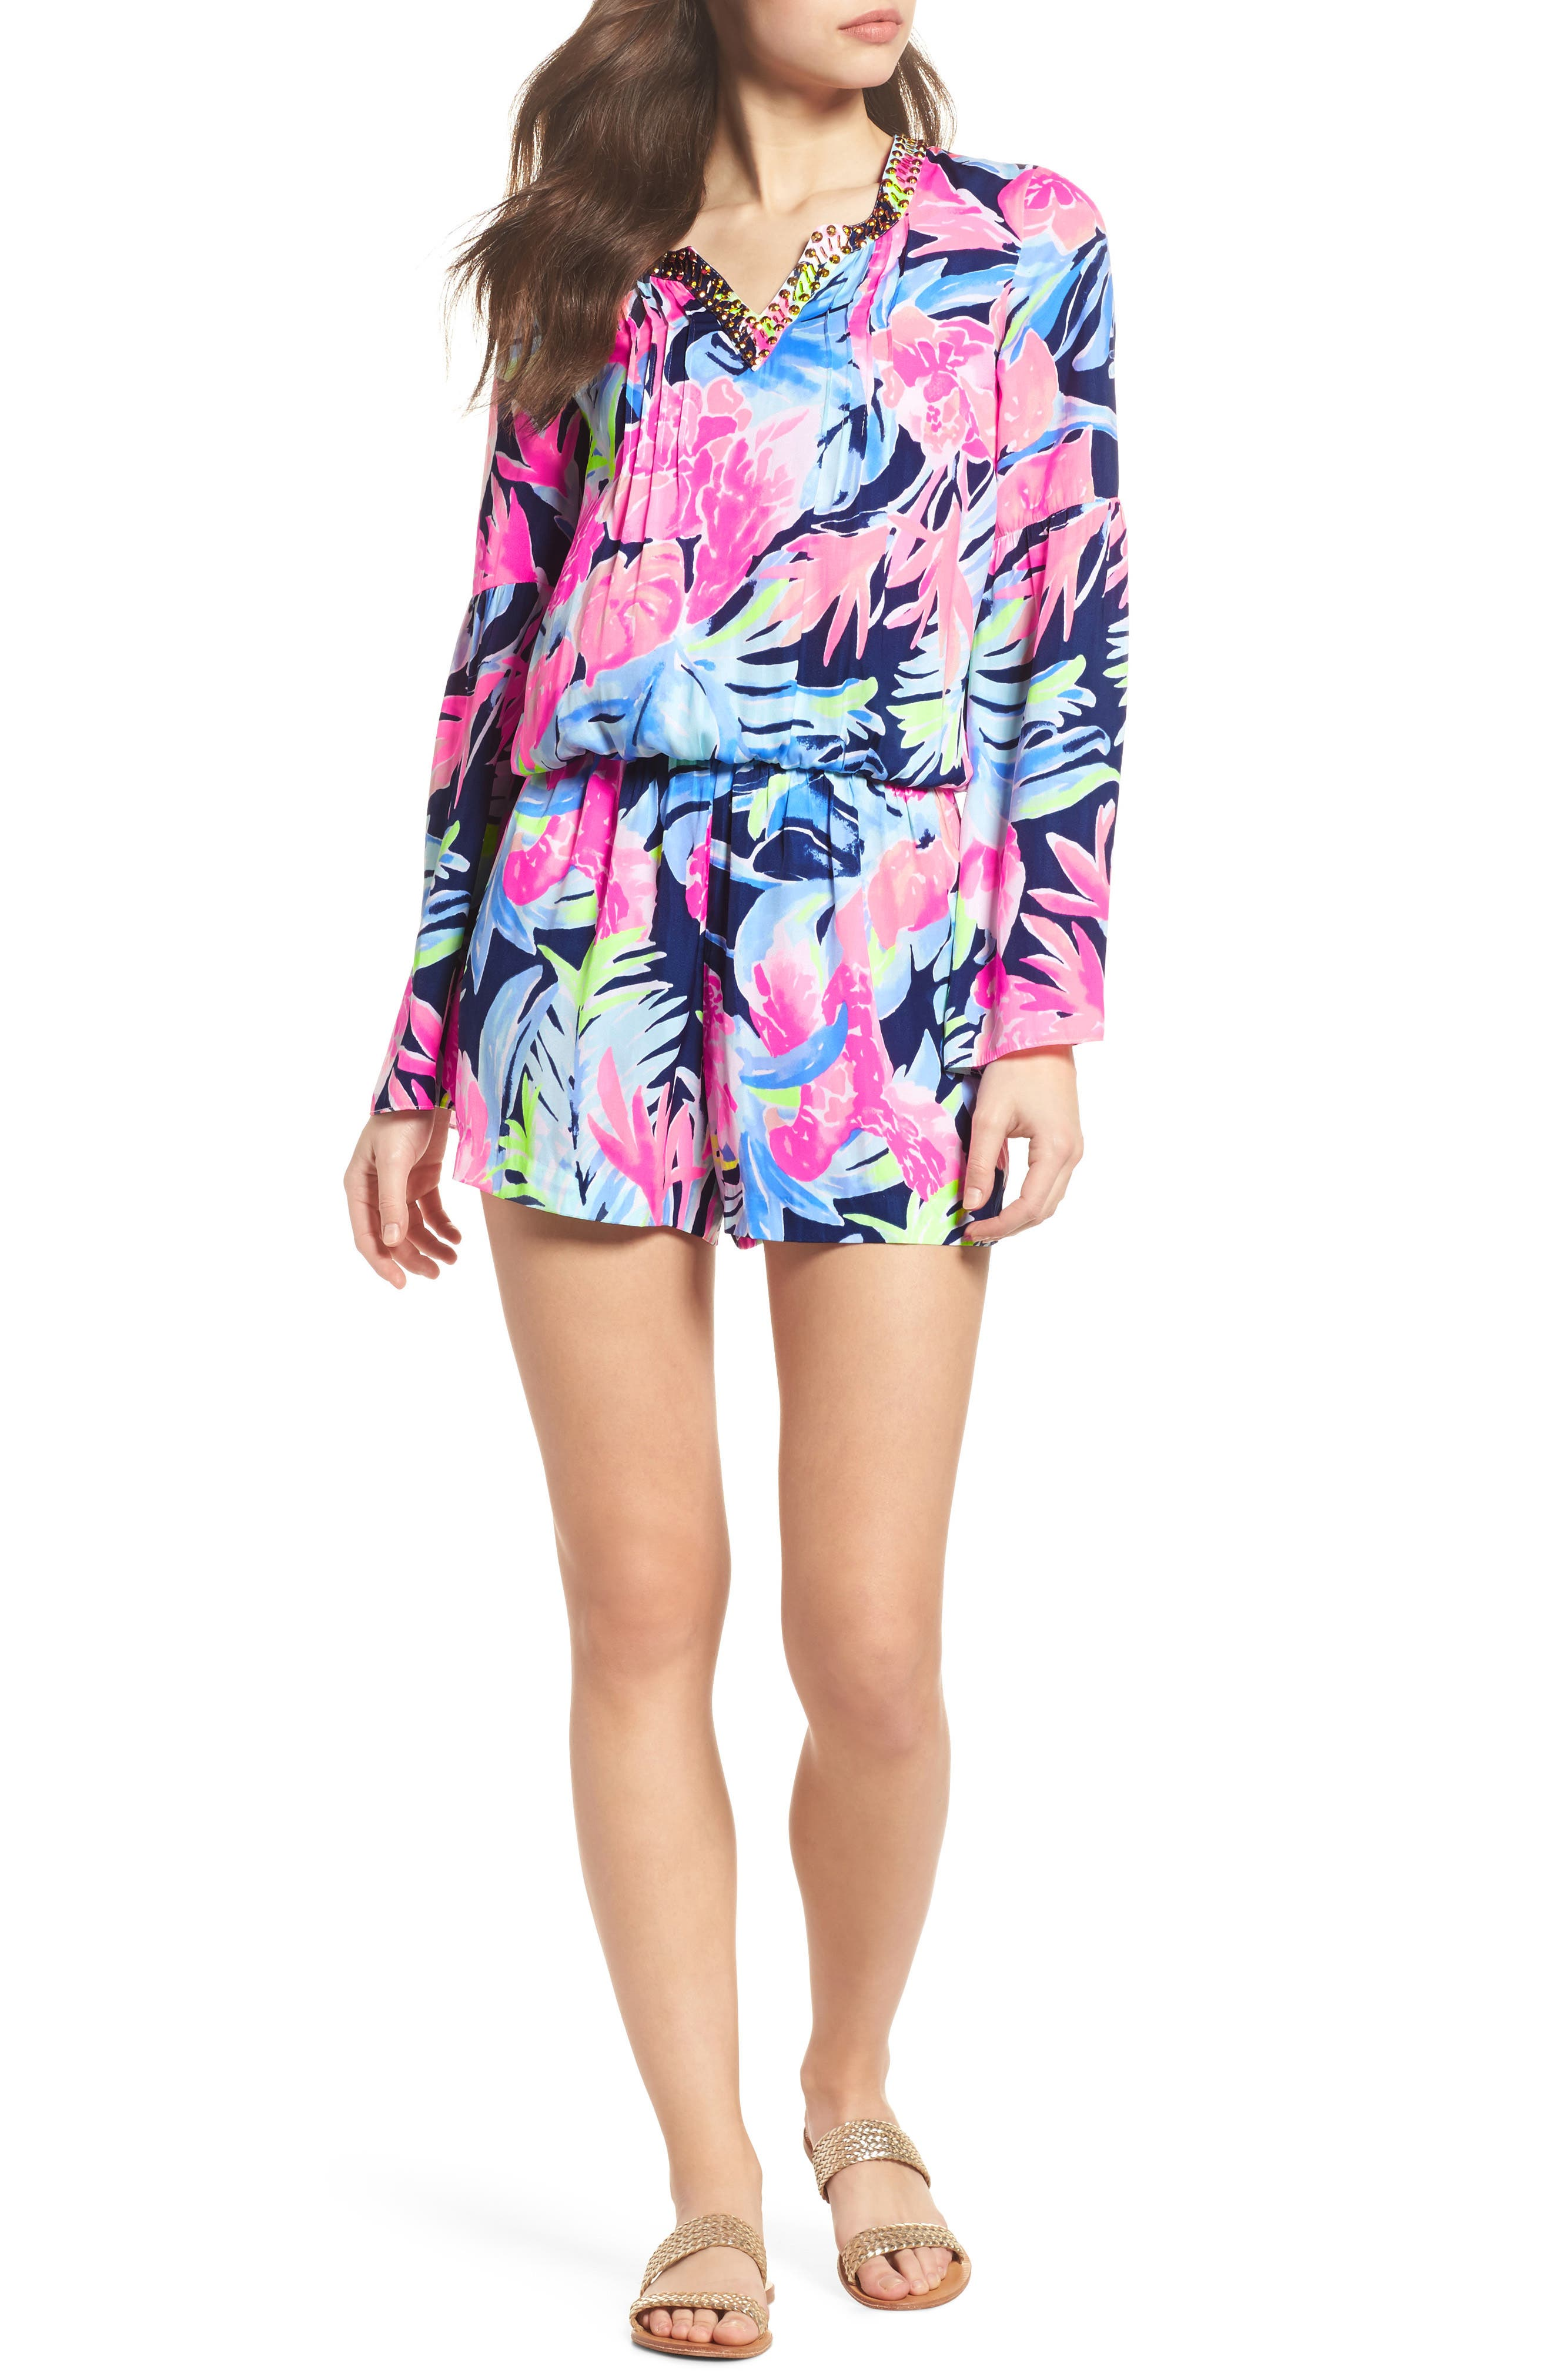 Ariele Floral Romper,                             Main thumbnail 1, color,                             High Tide Tropicolada